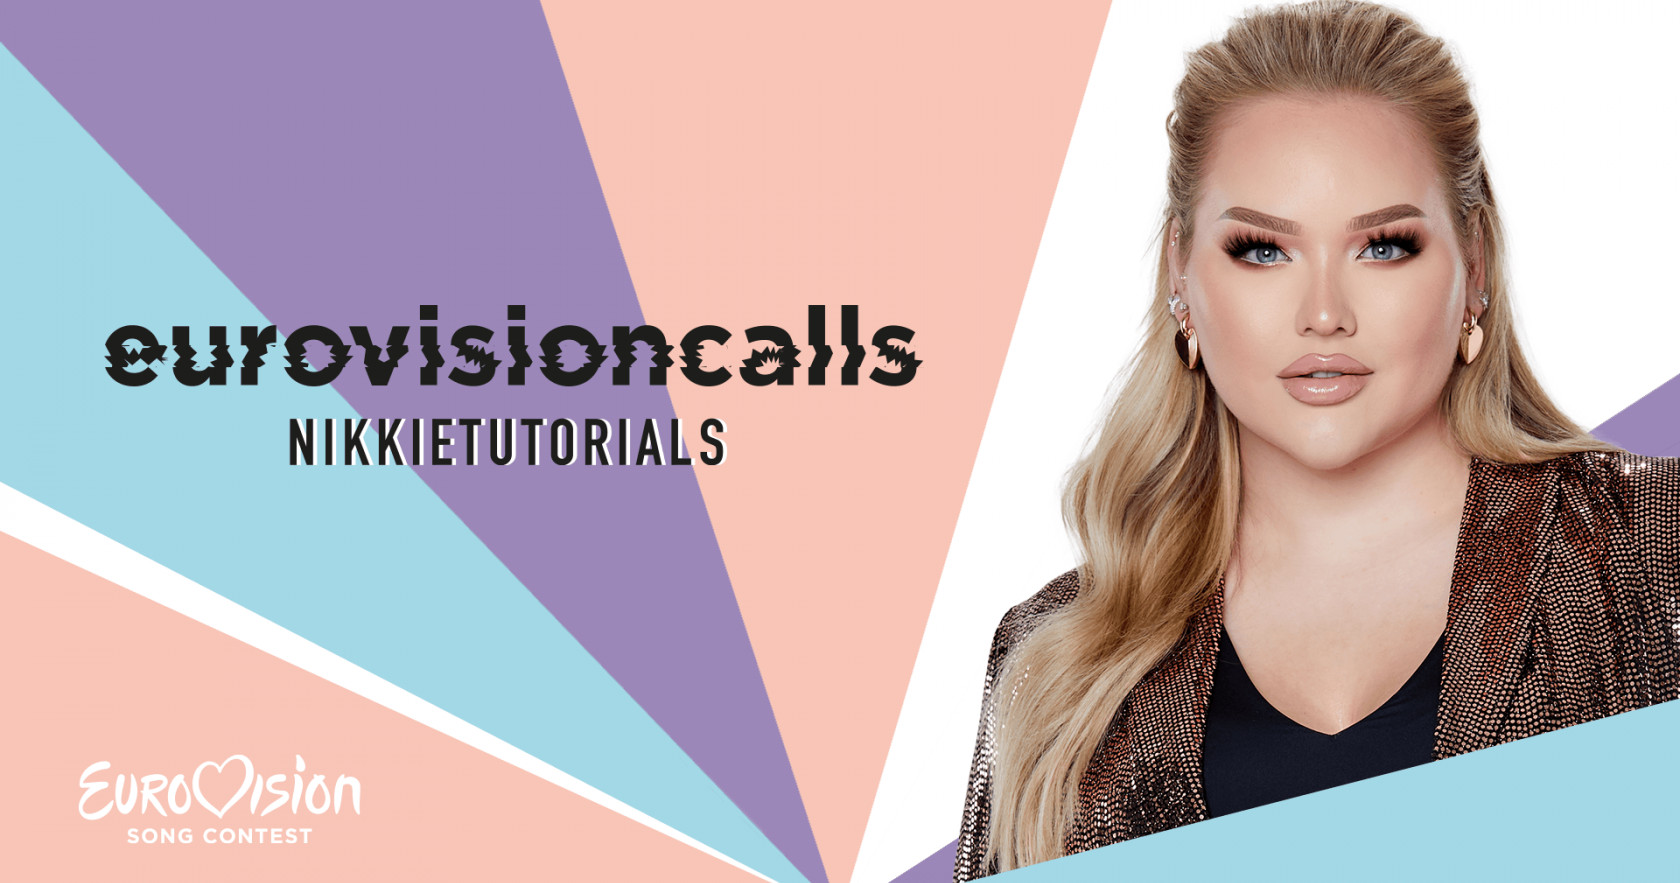 'Eurovisioncalls' with NikkieTutorials to unwind from May 4 on Youtube